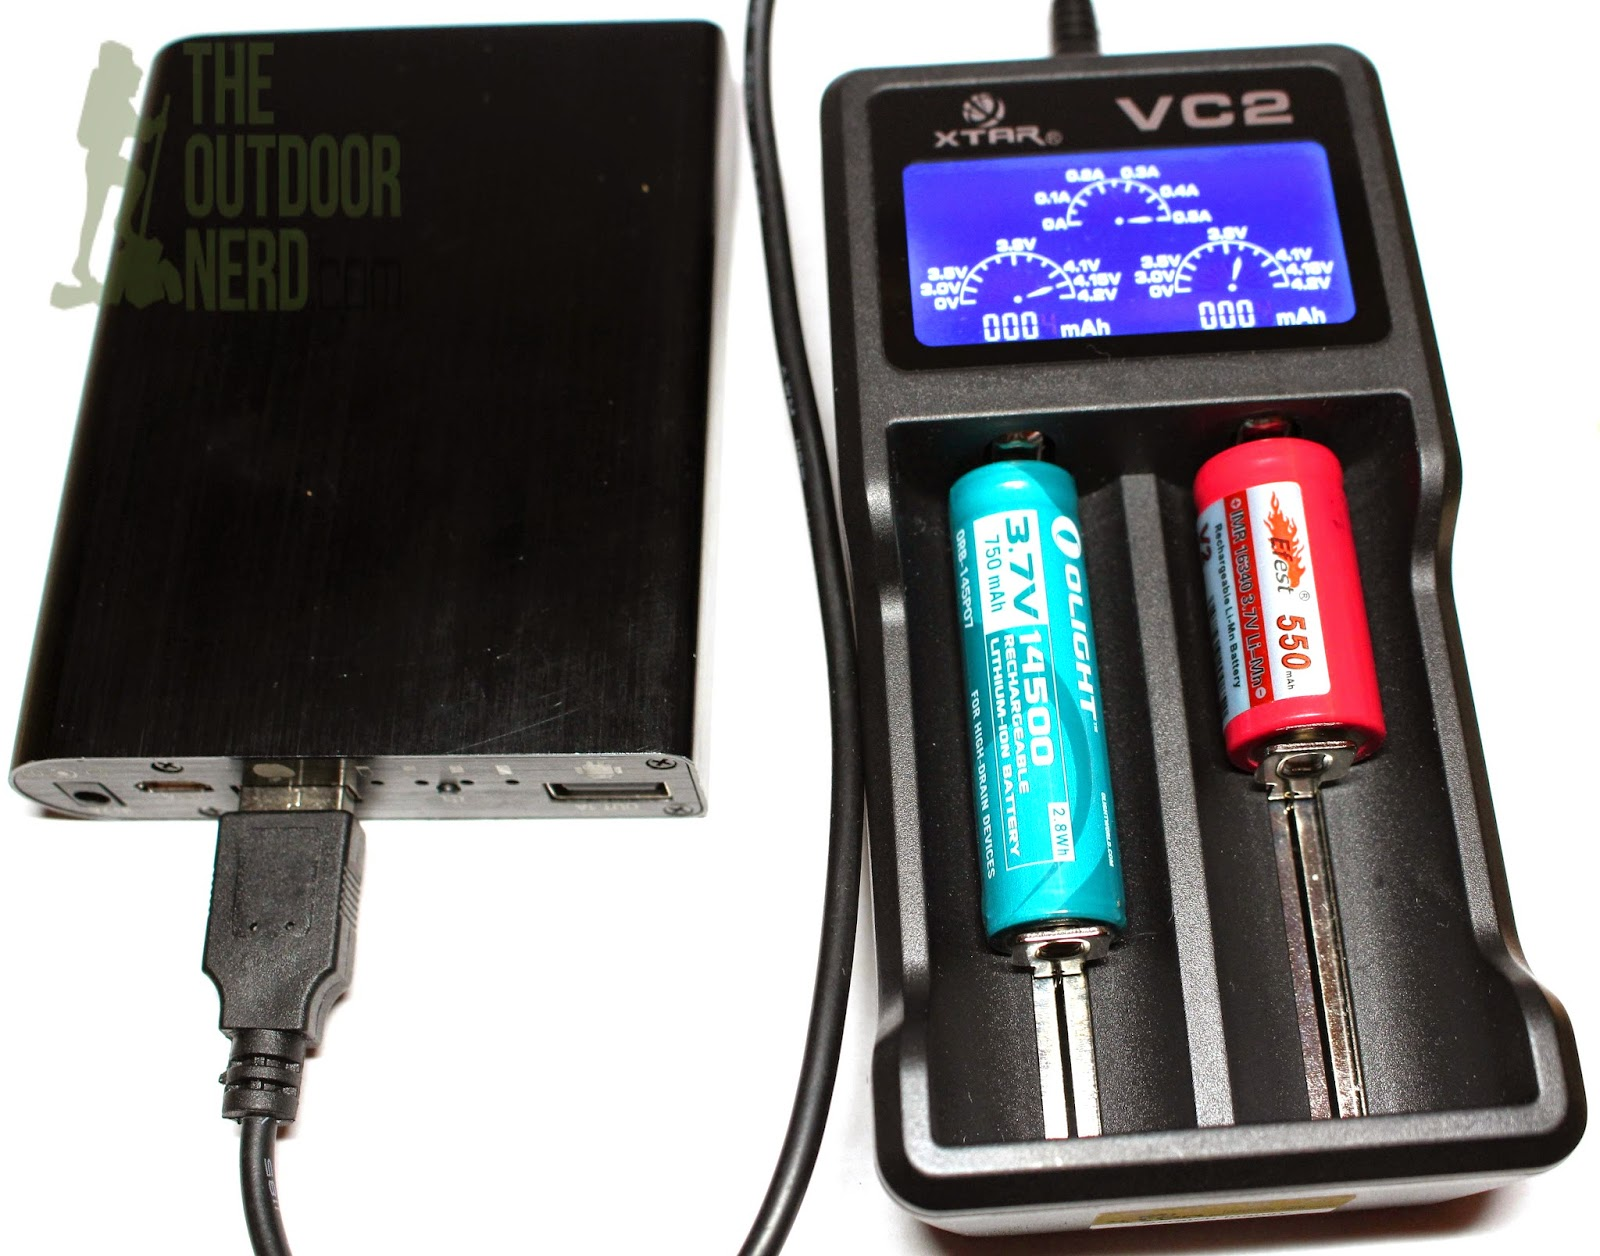 XTAR VC2 Lithium-Ion USB Charger - Product View 4